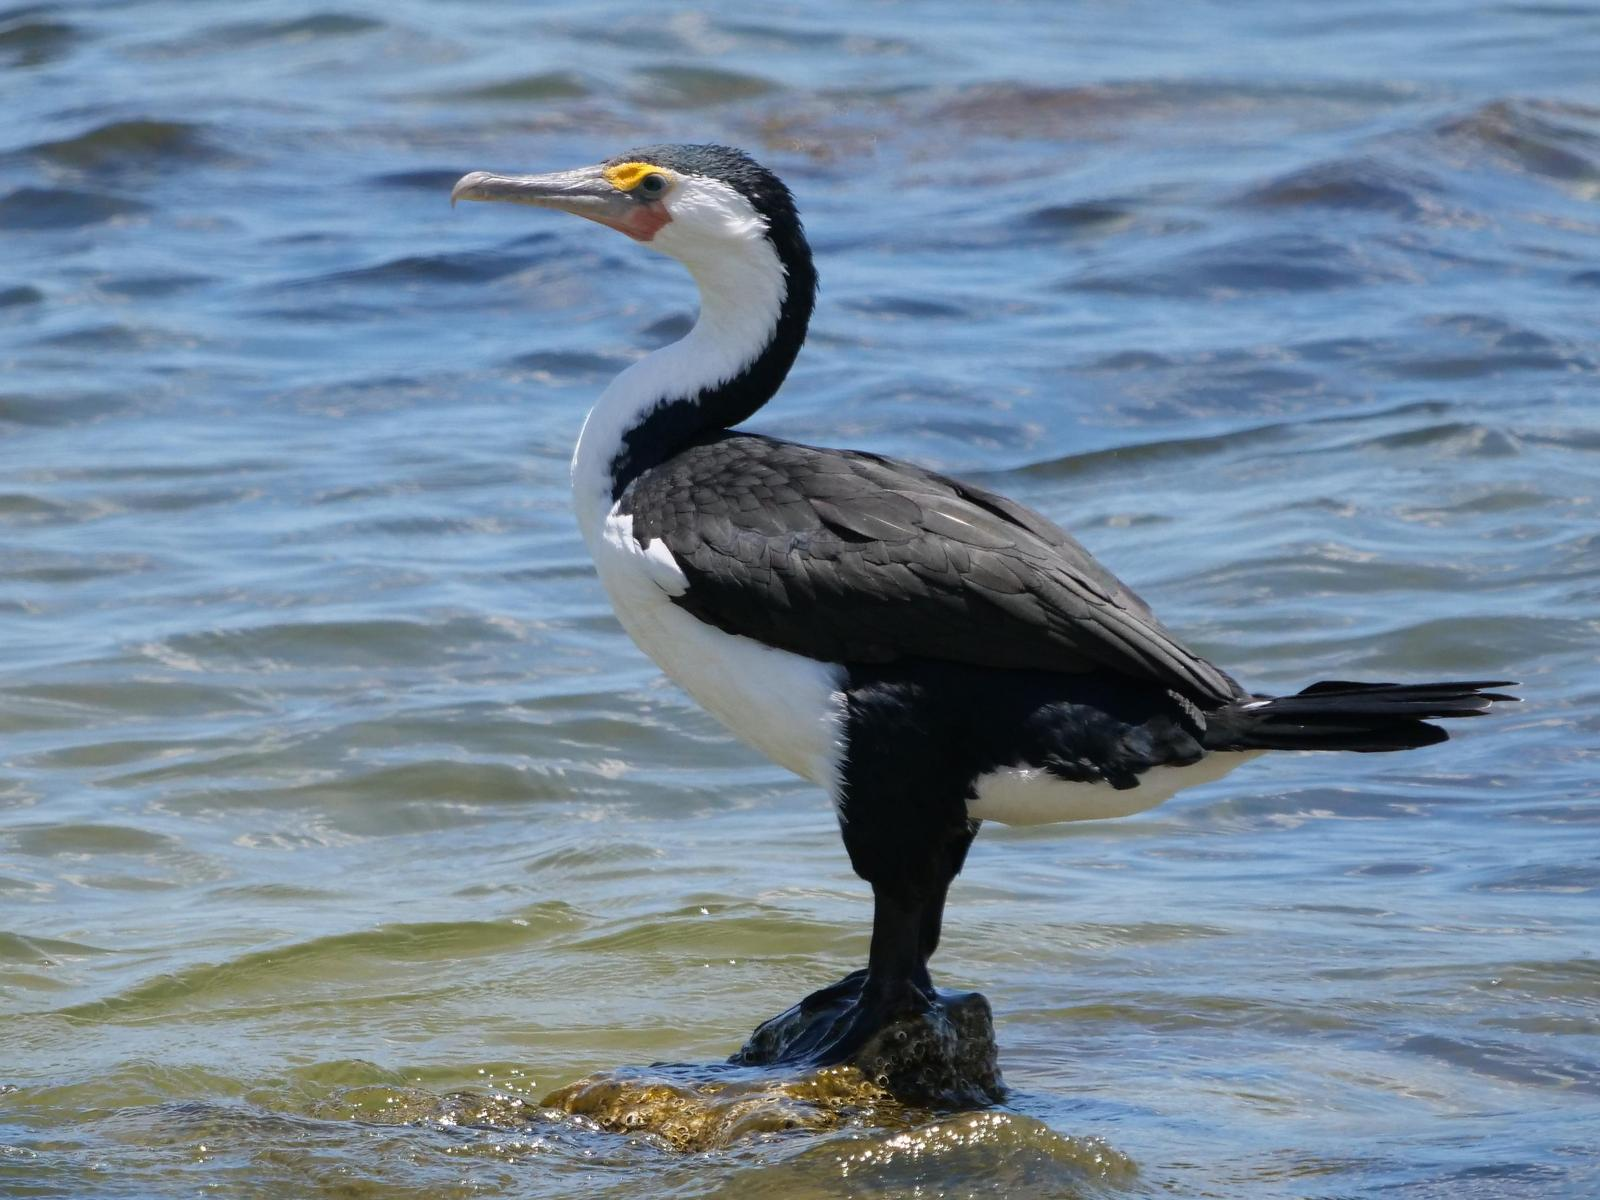 Pied Cormorant Photo by Peter Lowe